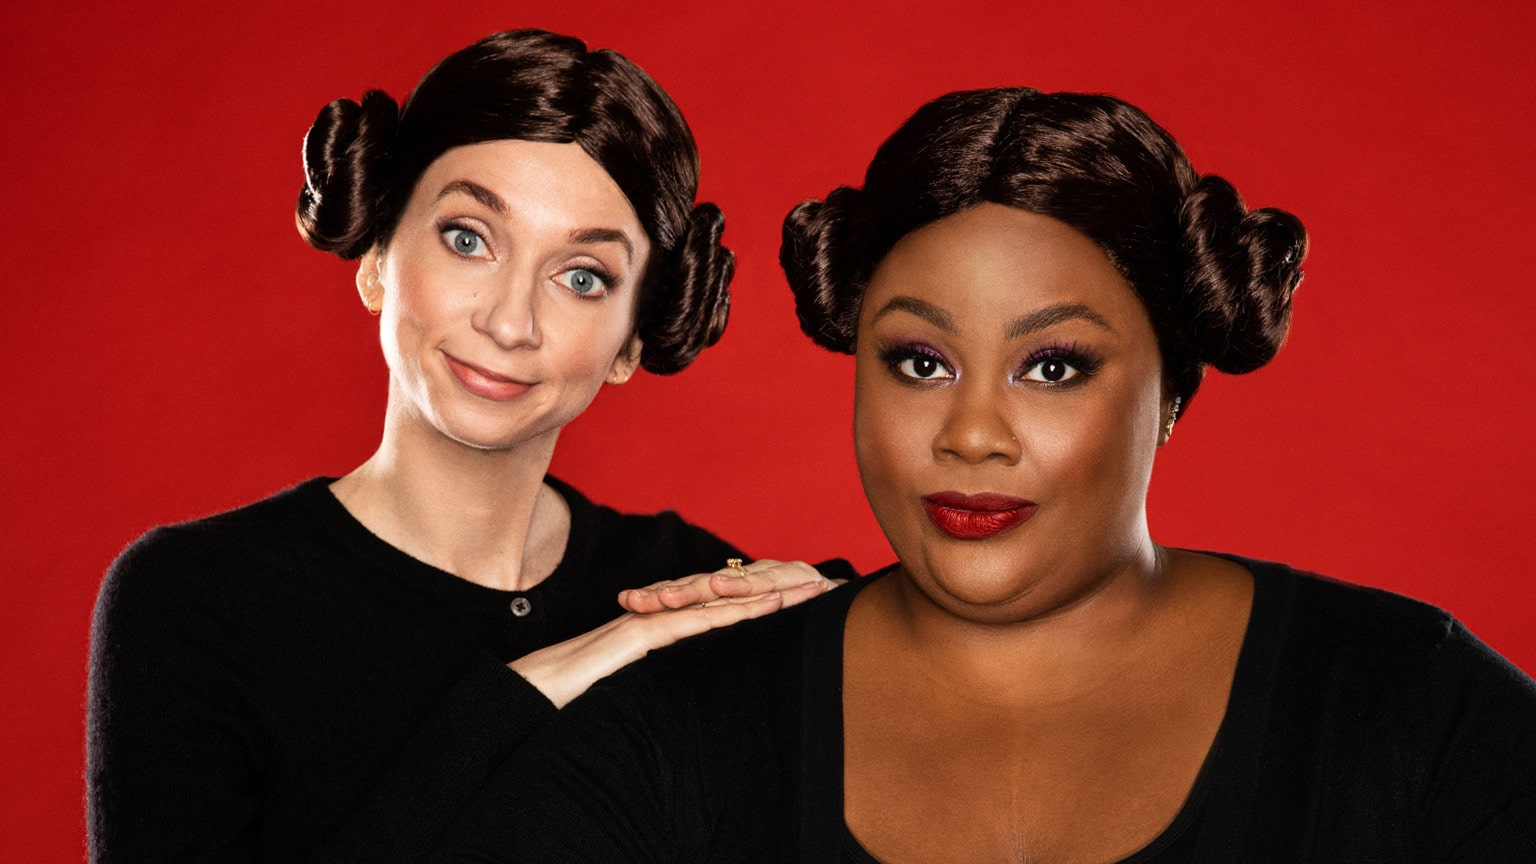 Newcomers Lauren Lapkus and Nicole Byer Take Their First Steps into the Larger World of Star Wars